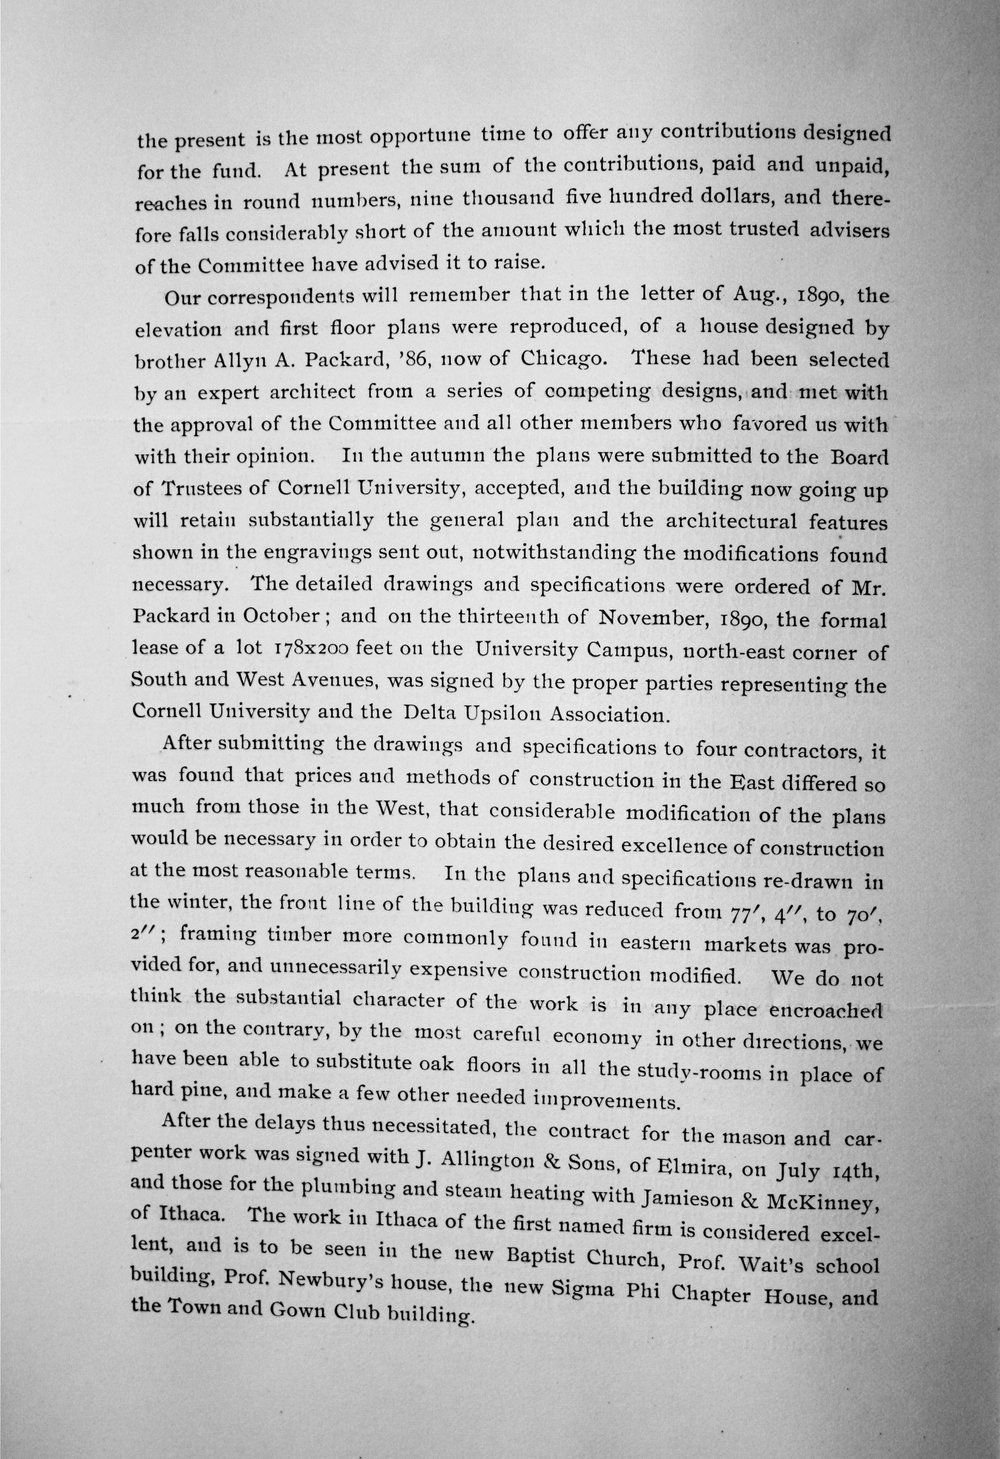 Circular About New House, Page 4